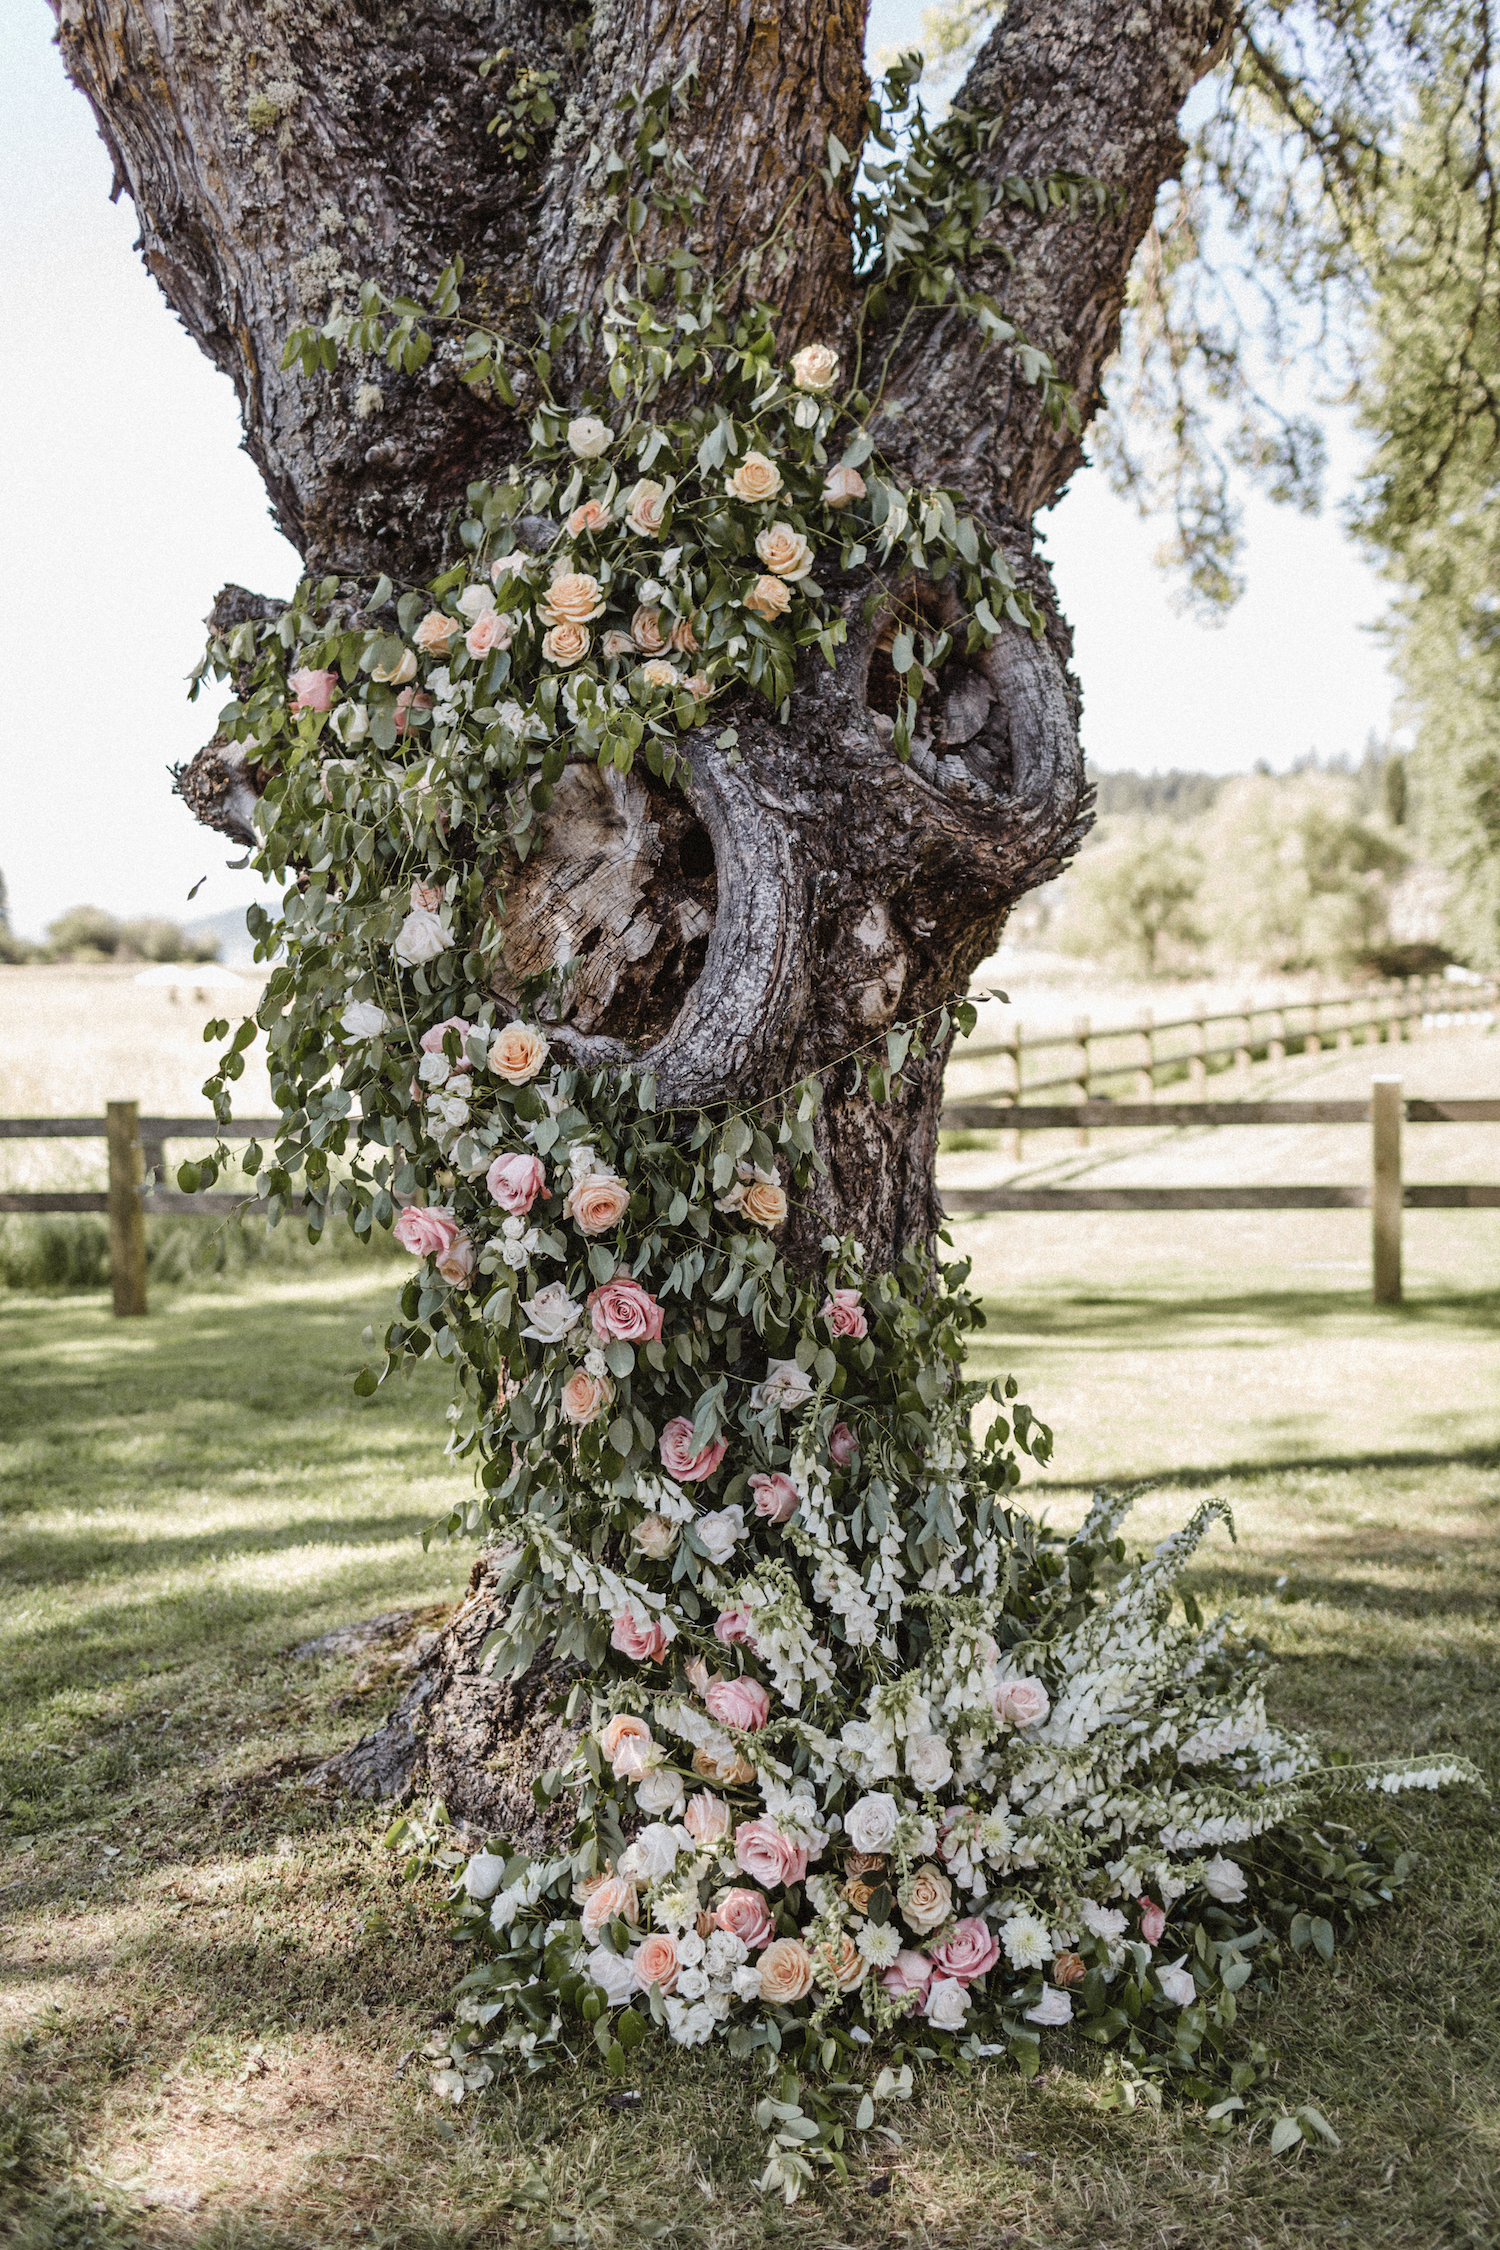 Julianne Hough and Brooks Laich Wedding - Wild Bloom Floral - Sarah Falugo Photography - Simply Troy Event Design 51.jpeg